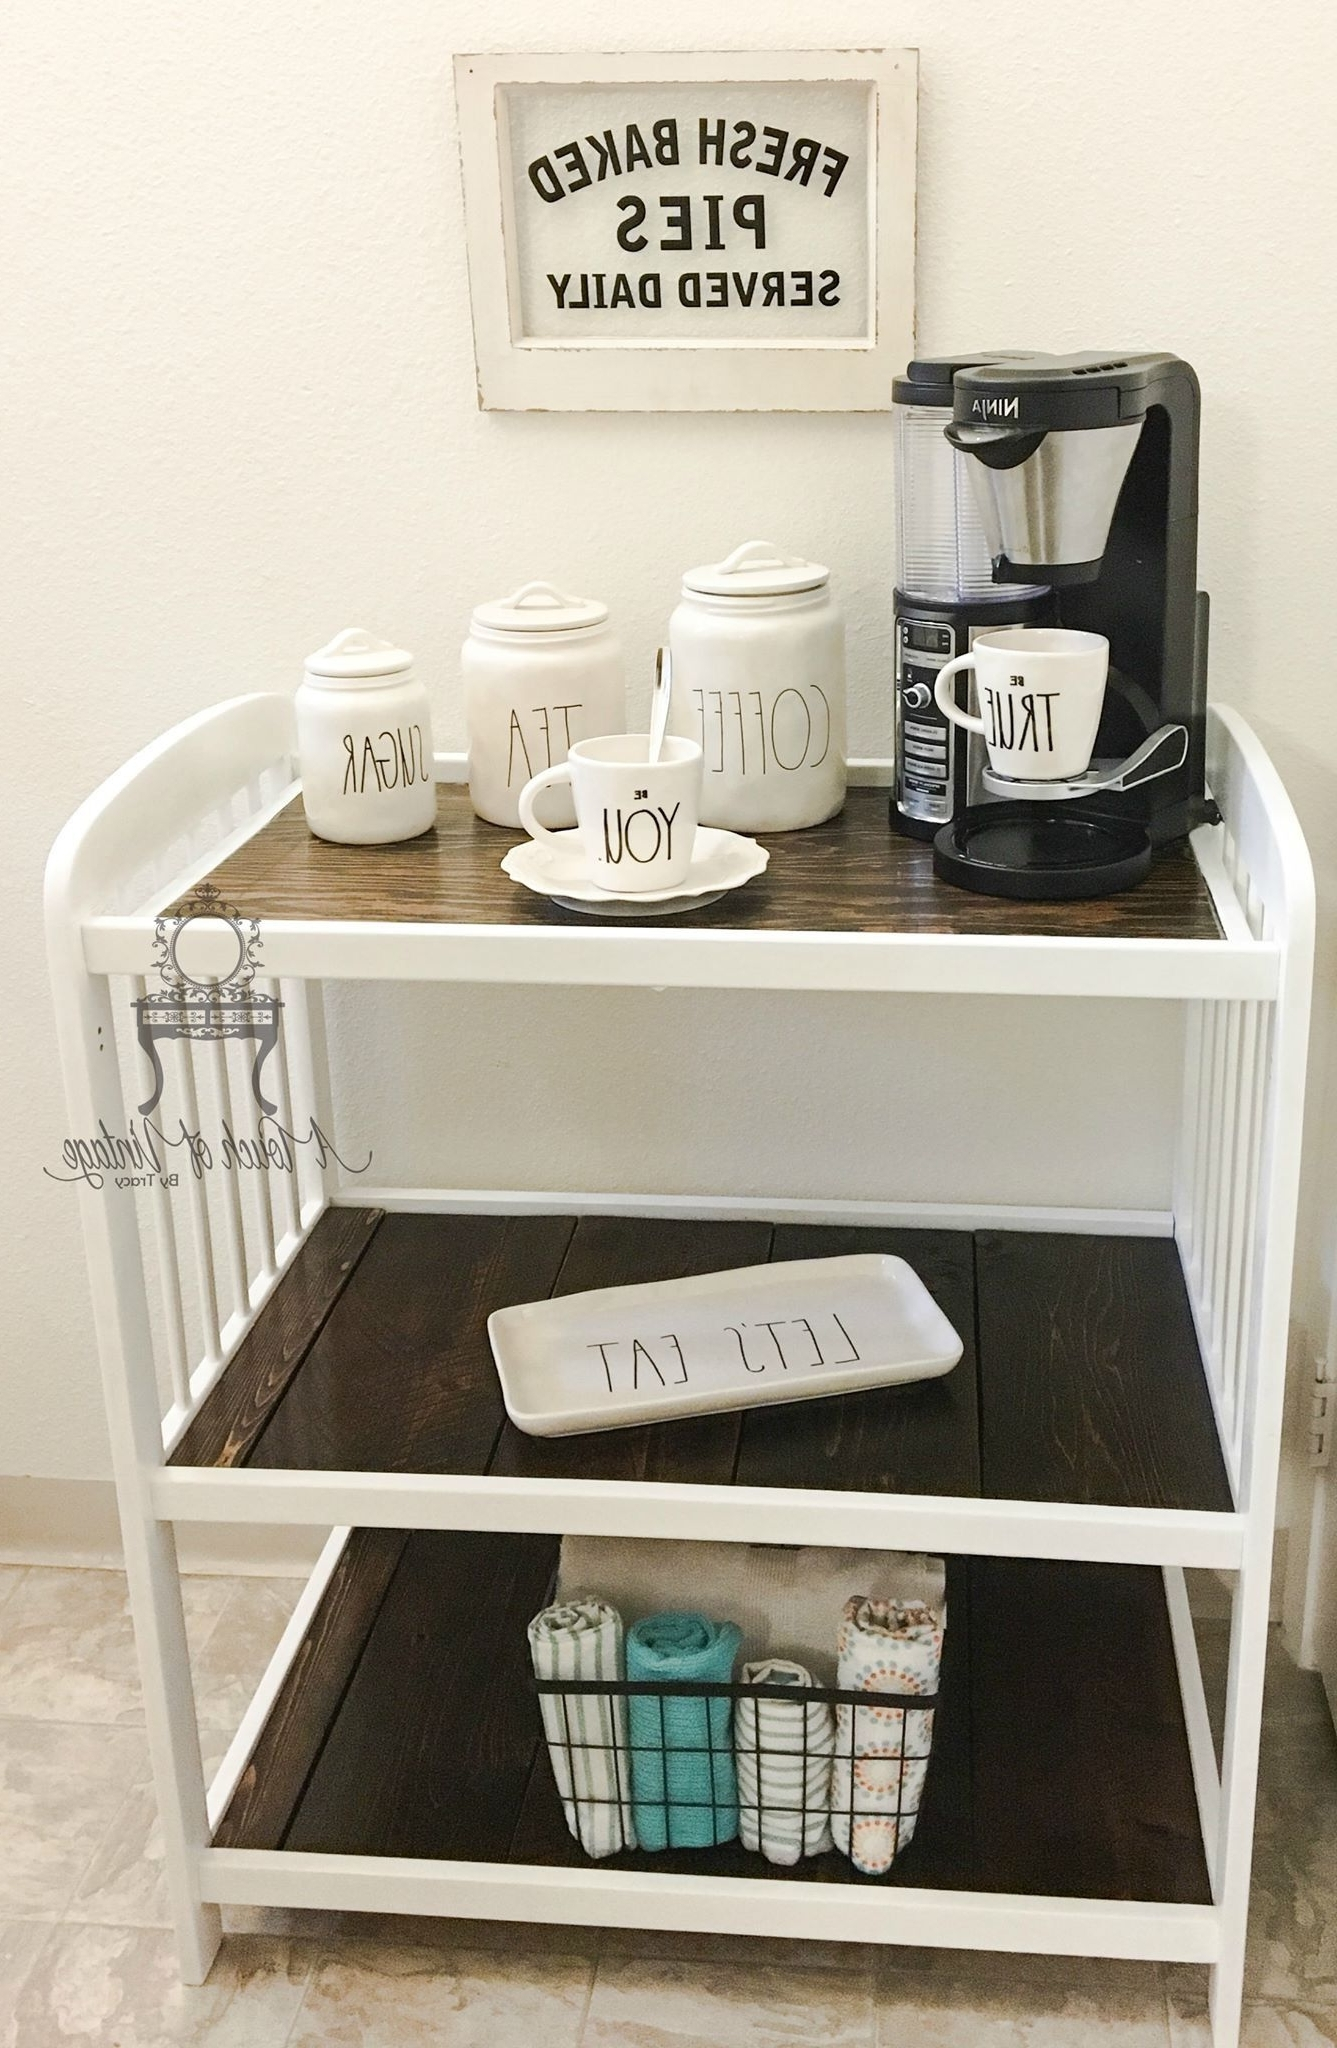 Baby Changing Table Repurposed To A Coffee Bar, Perfect Way To In 2018 Jacen Cocktail Tables (View 3 of 20)